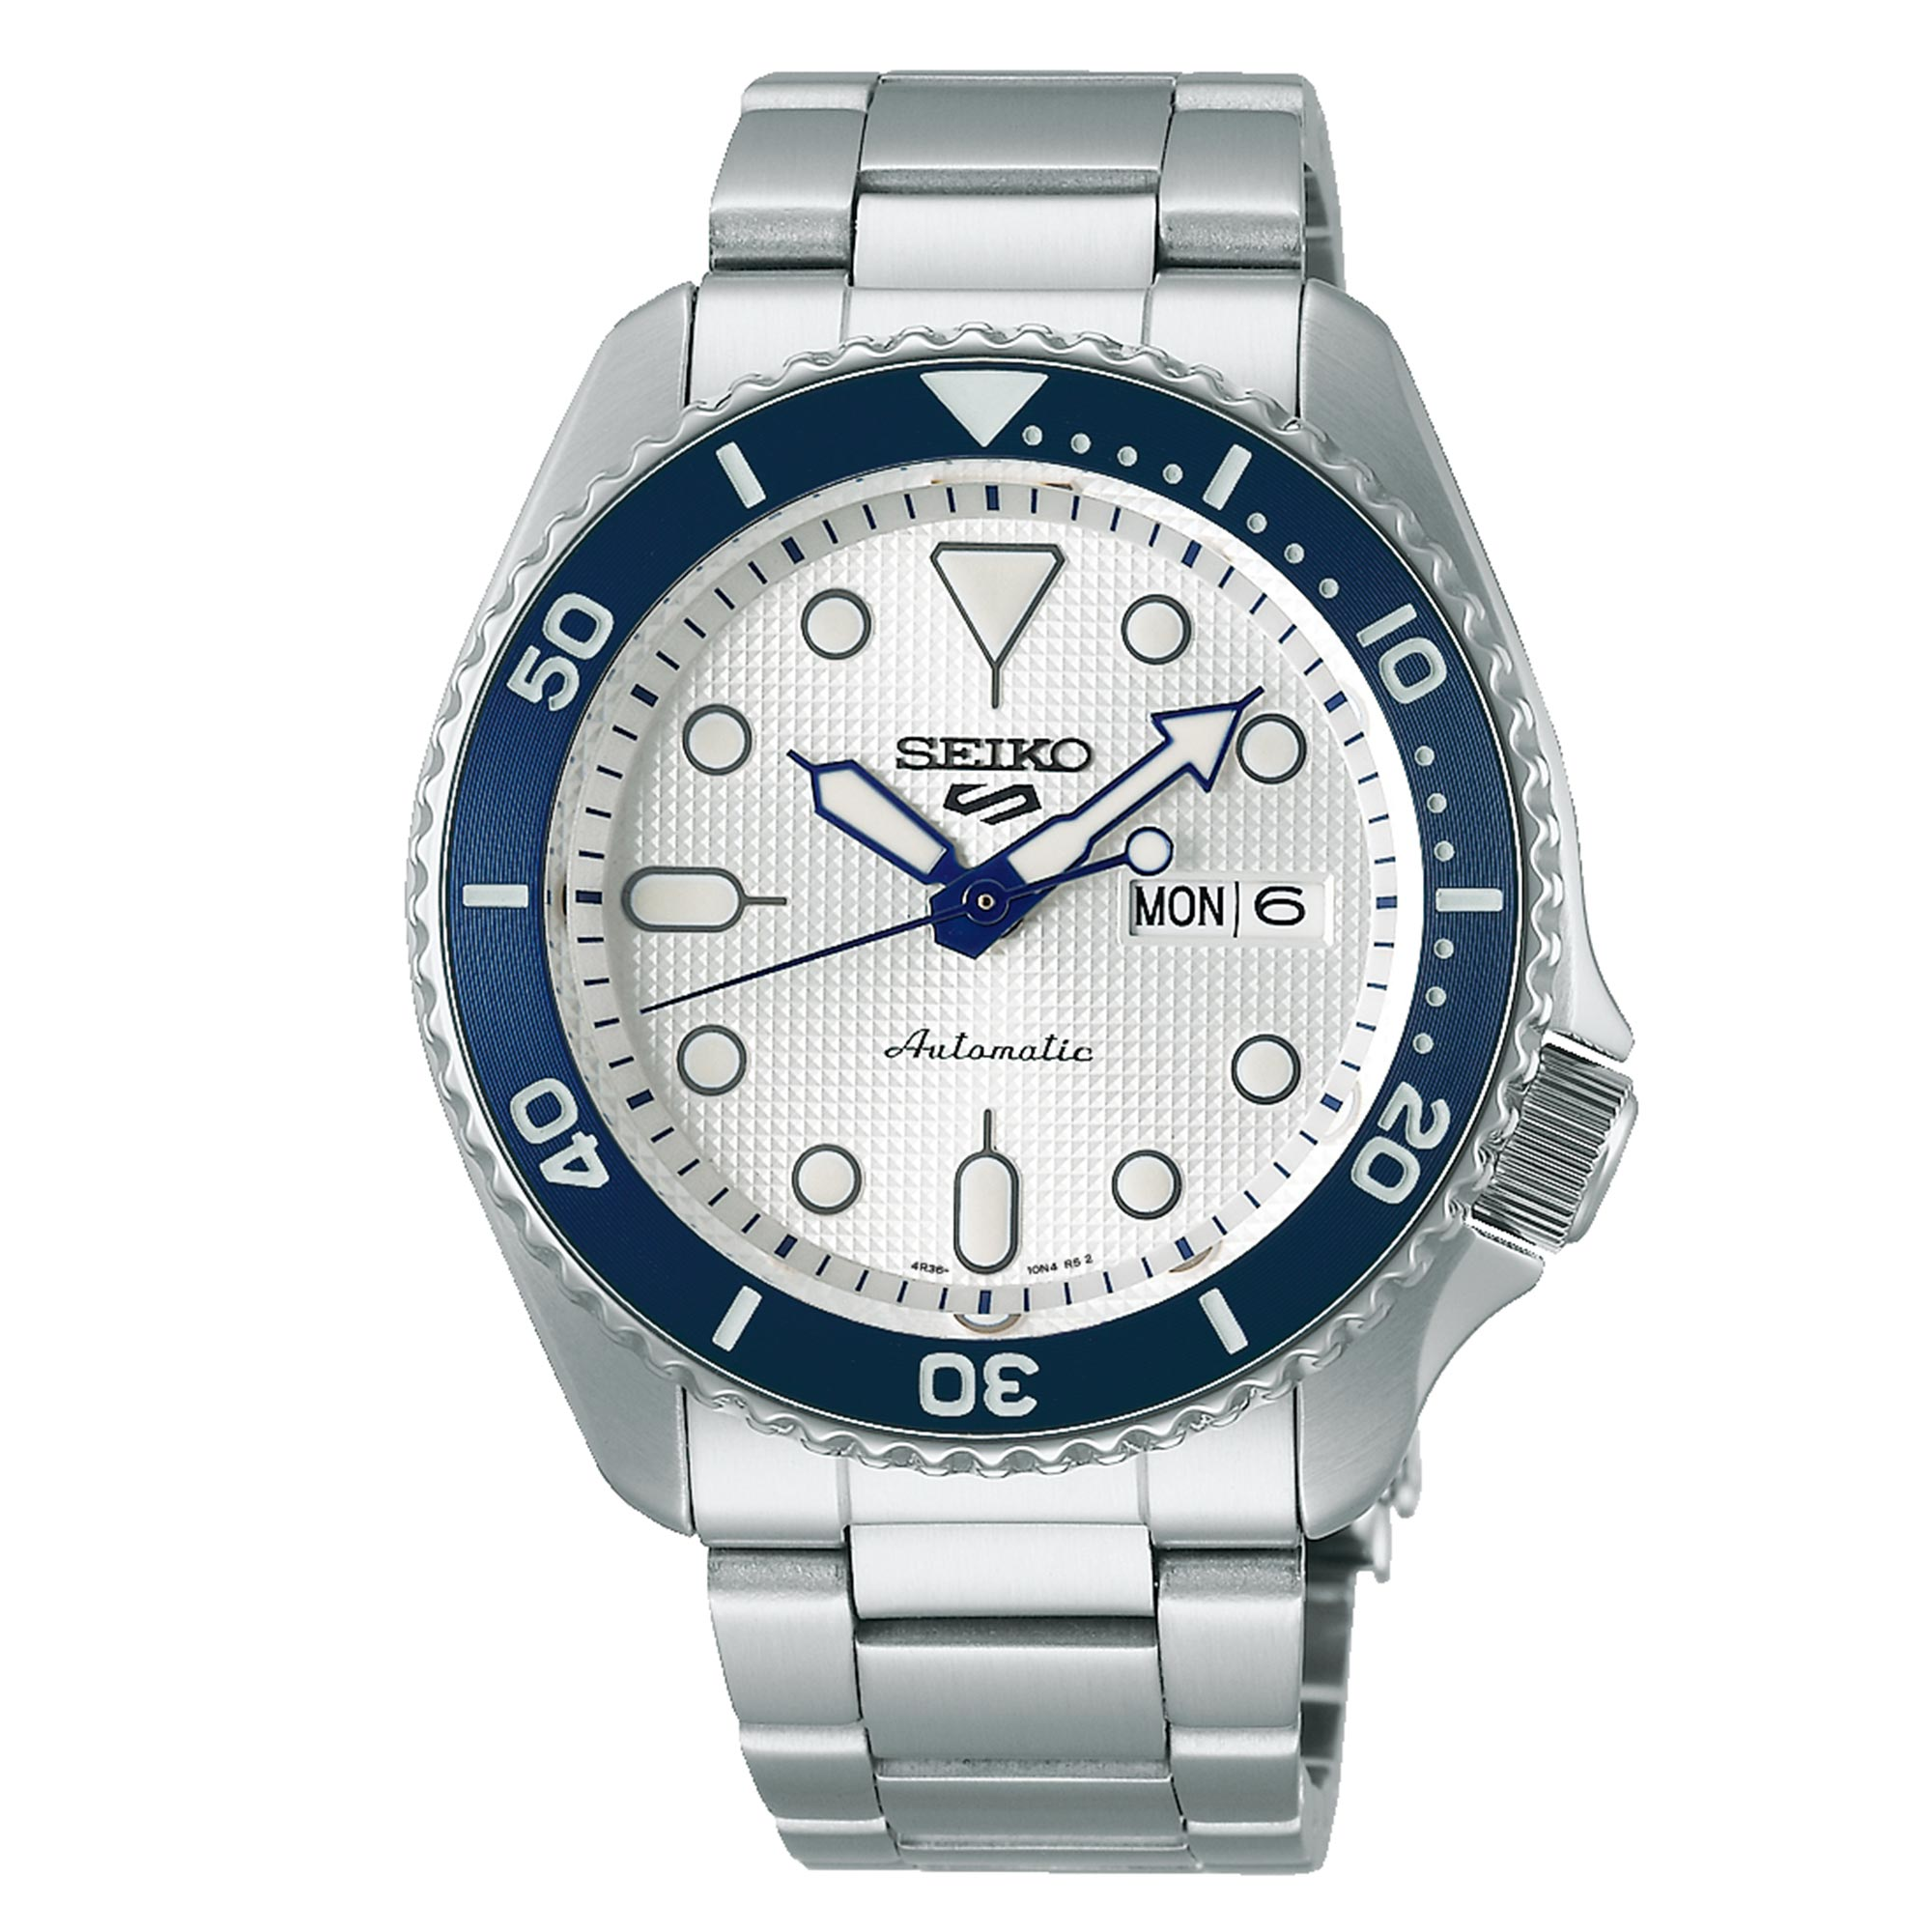 Seiko 5 Sports 140th Anniversary Limited Edition Automatic Movement White Dial Stainless Steel Bracelet SRPG47K1